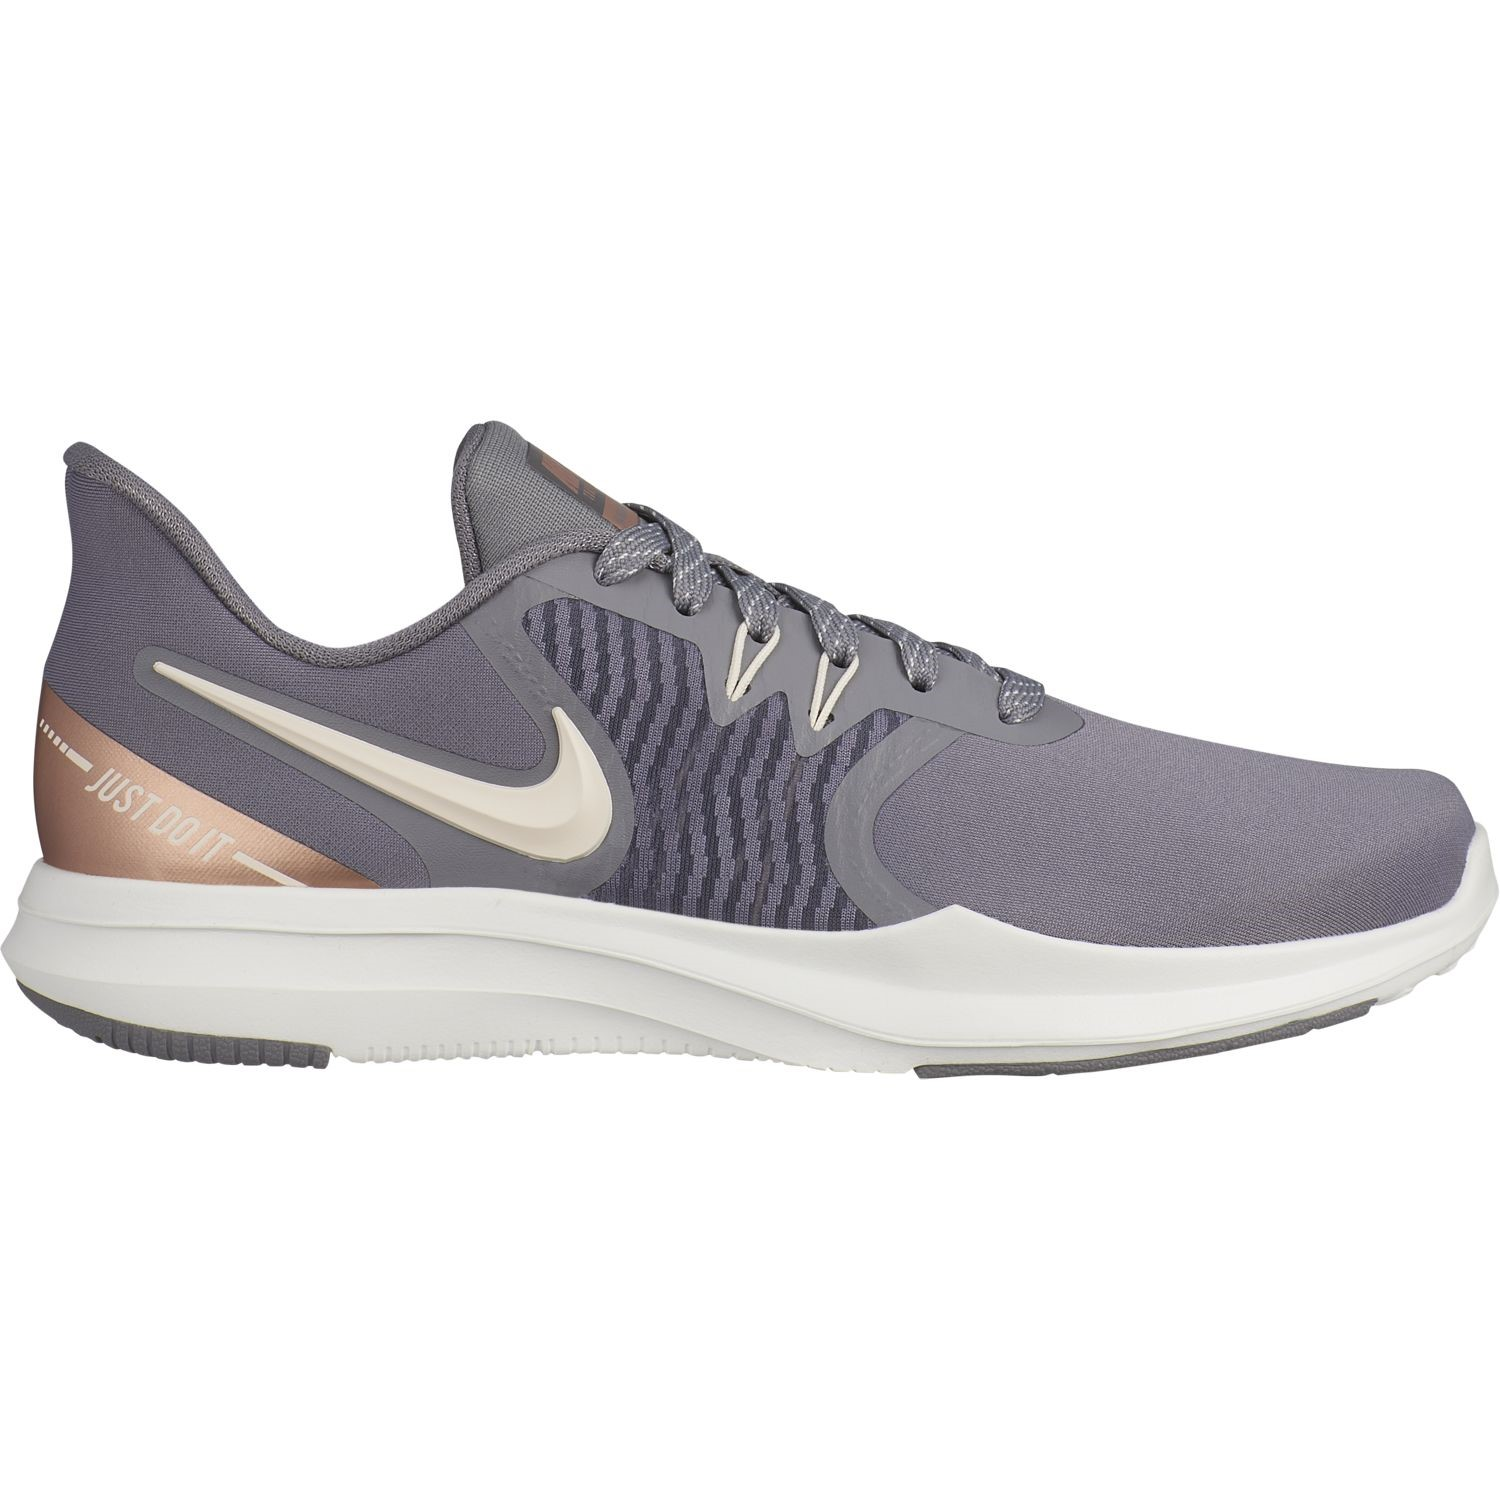 Nike Women's In Season TR 8 Premium Training Shoes | Dillard's